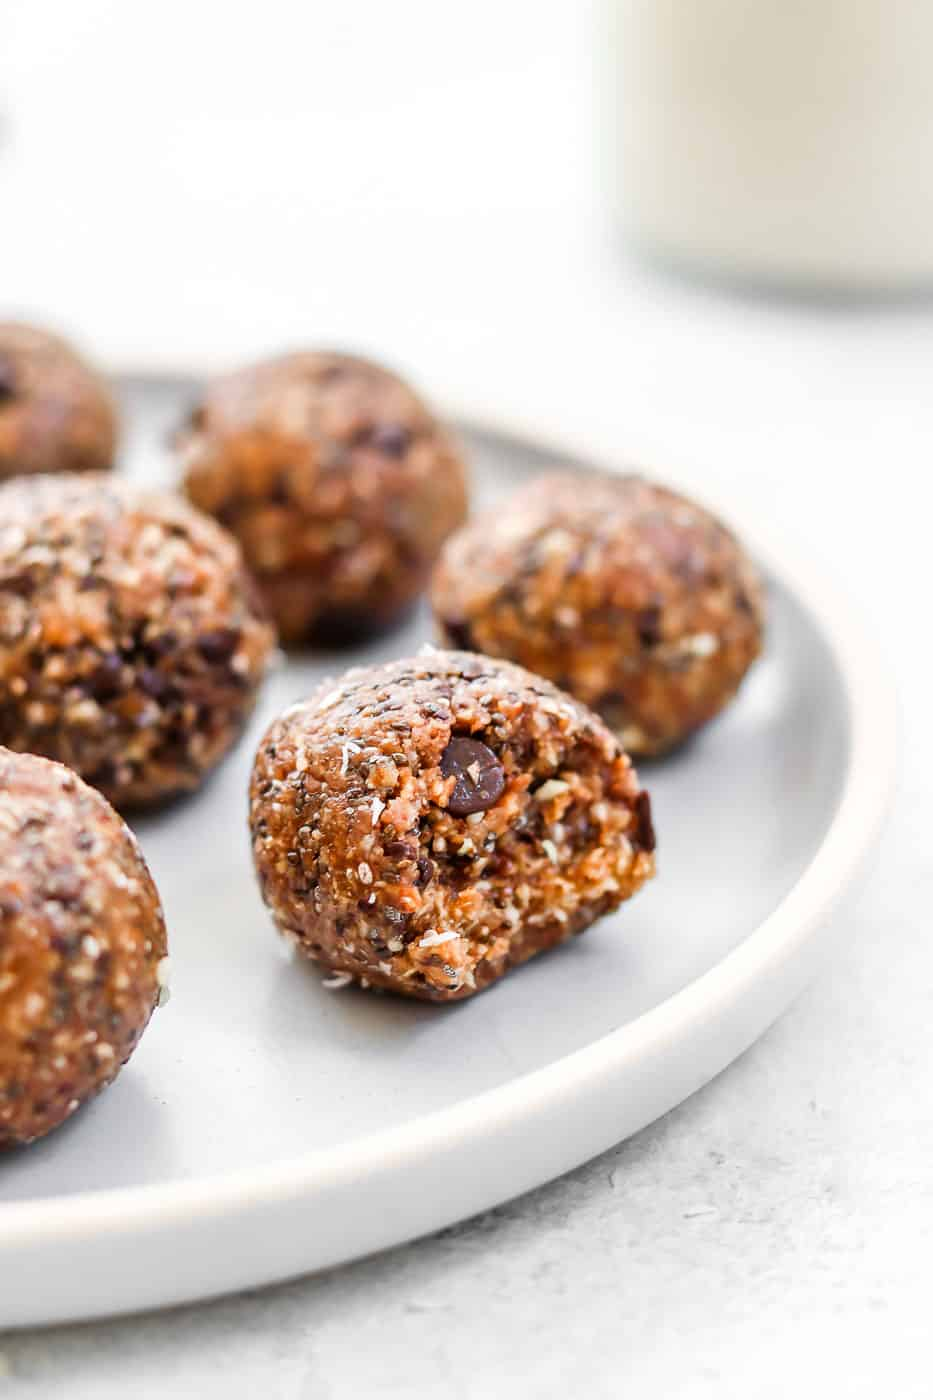 almond butter Energy balls on a blue plate with a bite taken out.